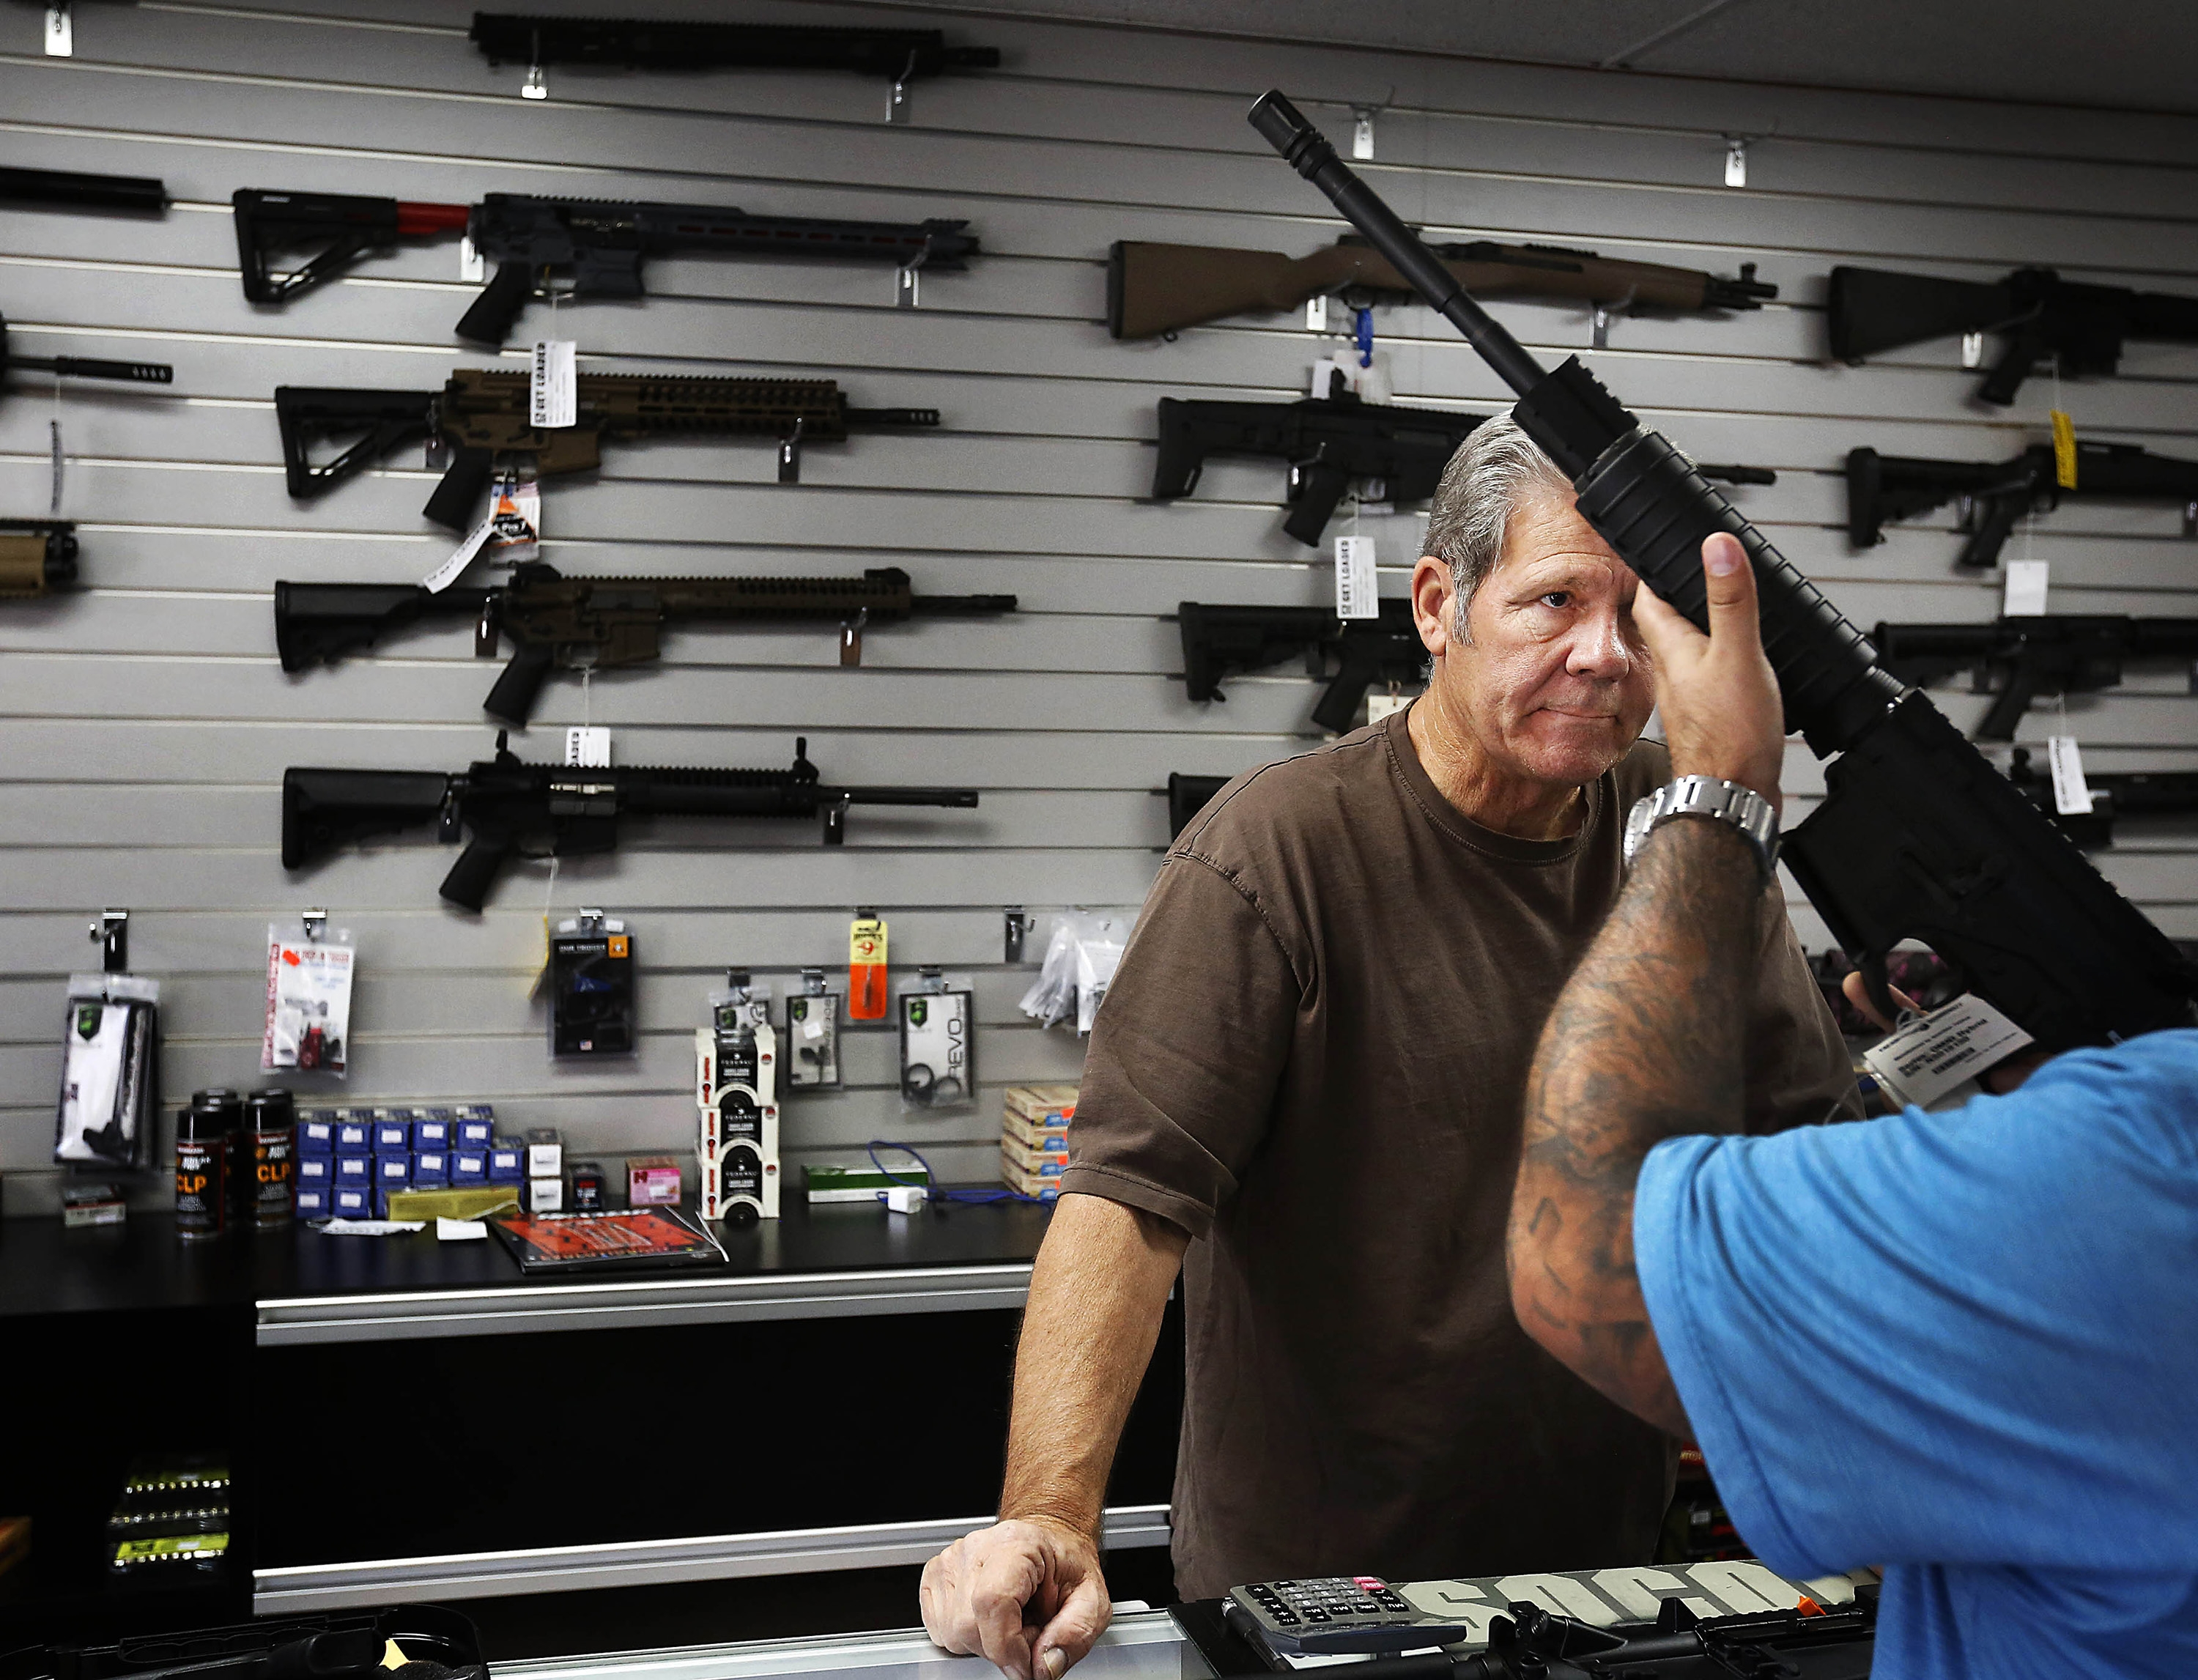 The Supreme Court declined to review a lower-court ruling that upheld the constitutionality of the assault weapons ban included in New York's SAFE Act, which bars the sale of a series of semi-automatic weapons based on their physical characteristics. (Tribune News Service)